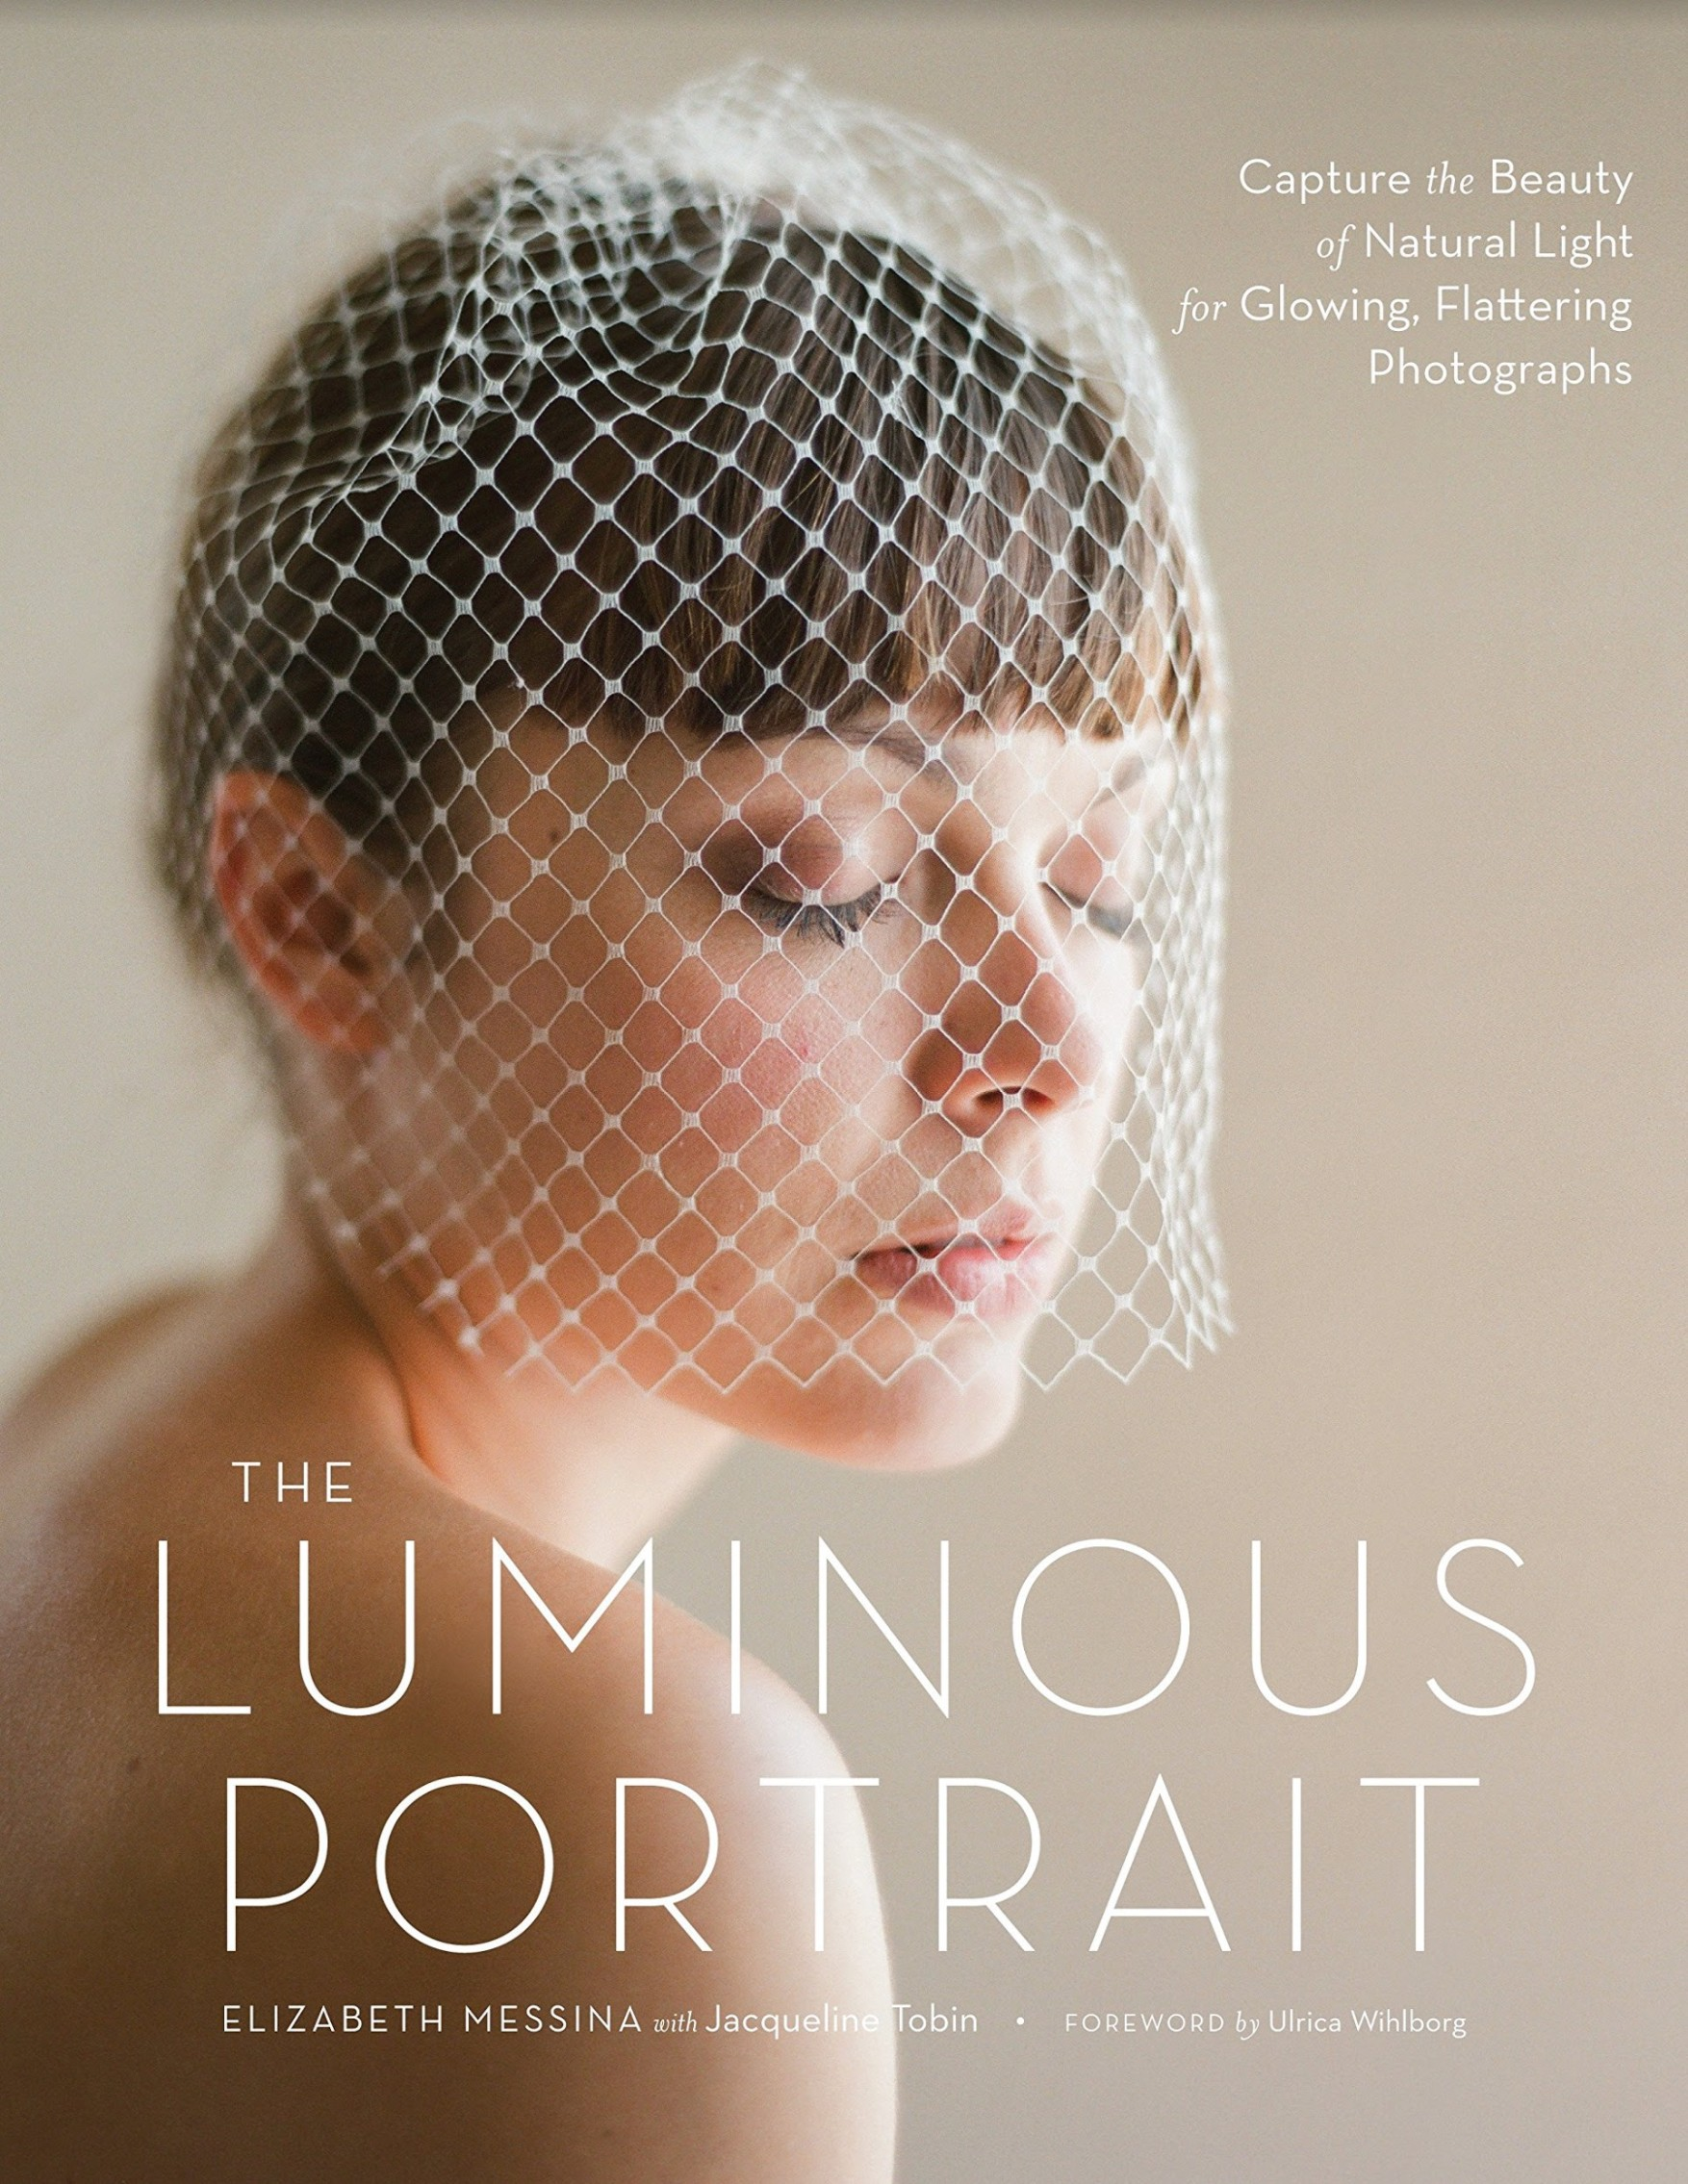 Cover of the book the luminous portrait written by Elizabeth Messina and Jacqueline Tobin and foreword by Ulrica Wihlborg